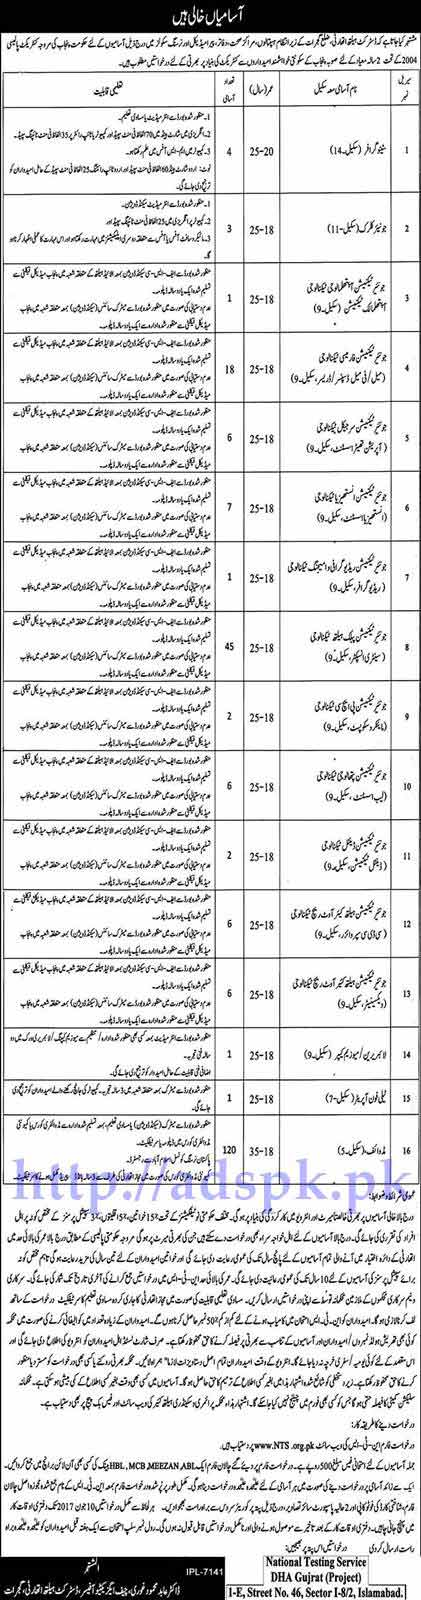 Jobs District Health Authority Gujrat Jobs 2017 NTS Written MCQs Test Syllabus Paper for Stenographer Junior Clerk Junior Technicians Librarian Telephone Operator Midwife Jobs Application Deadline 10-06-2017 Apply Now by NTS Pakistan